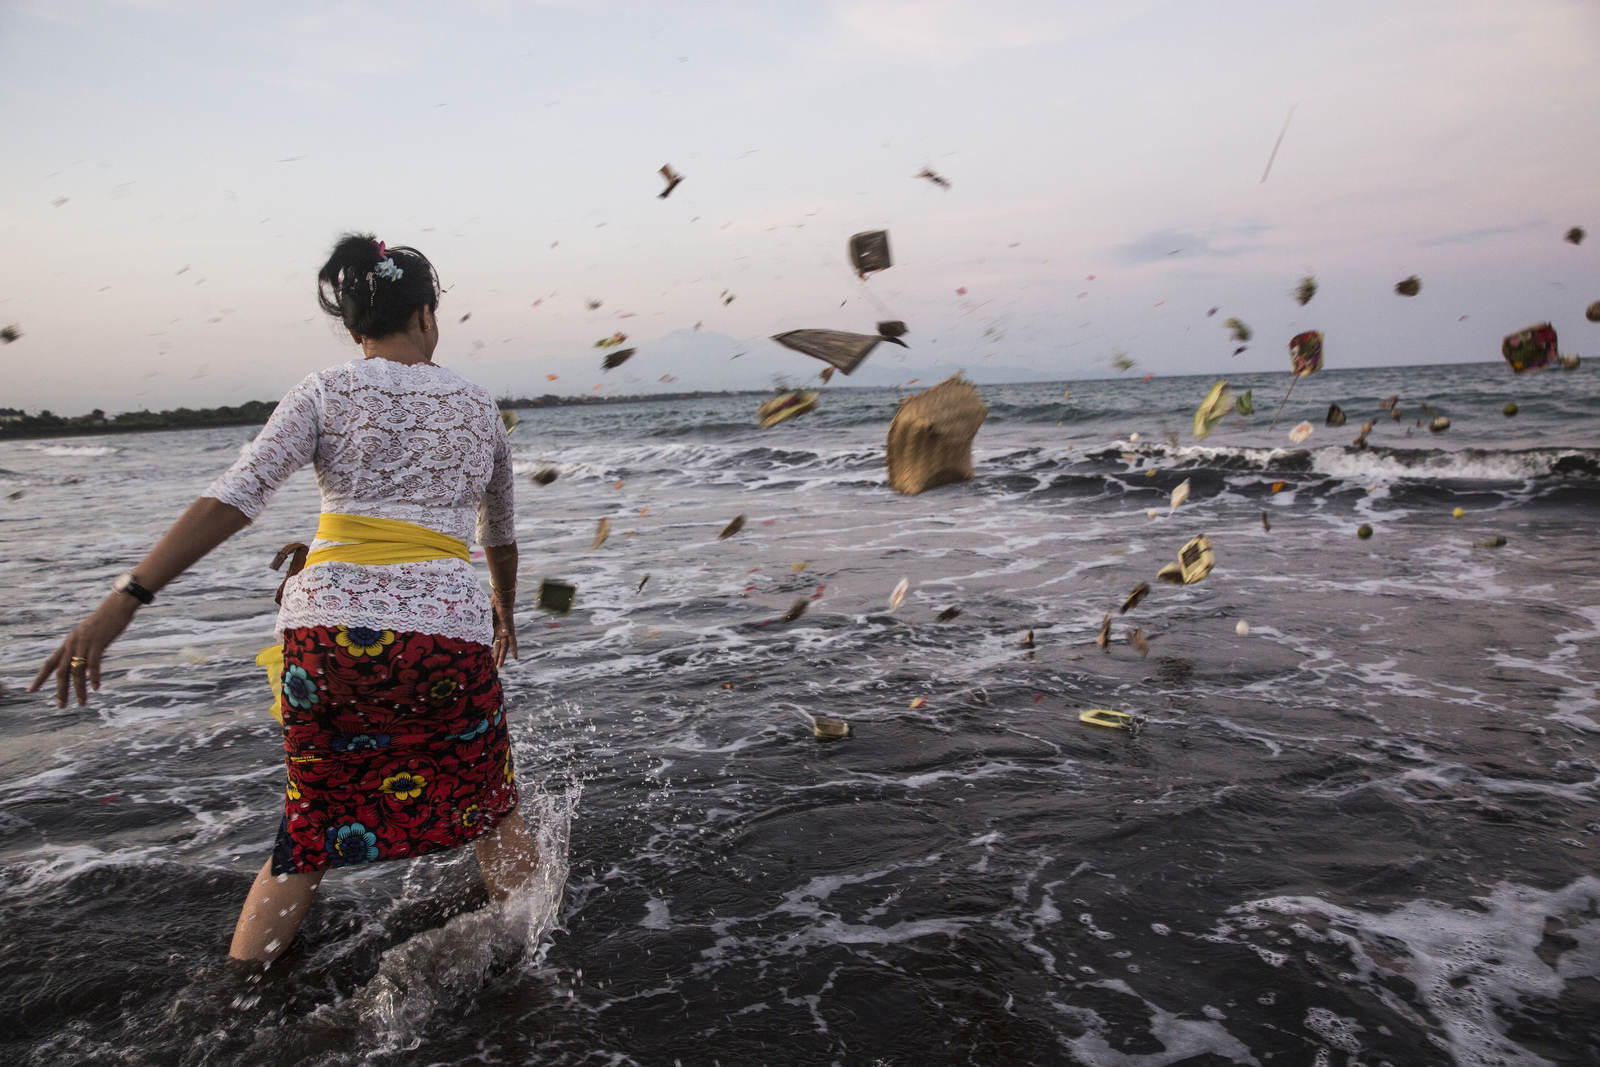 A woman throws offerings to the sea for her deceased relative in Bali, Indonesia.